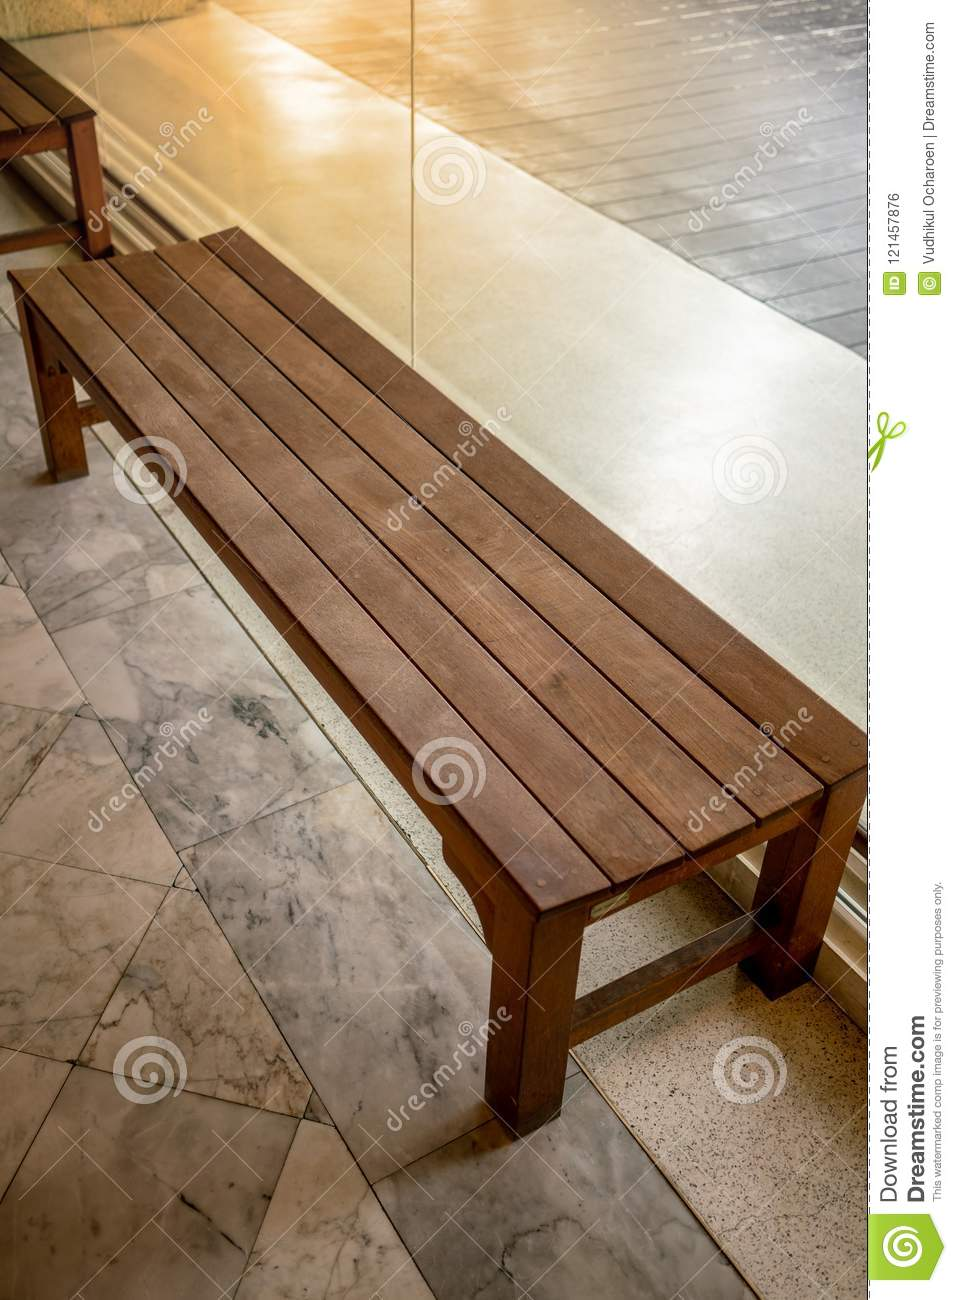 Wooden Chair Or Wood Bench Inside A Building Along A Walkway Stock Photo Image Of Decoration Modern 121457876